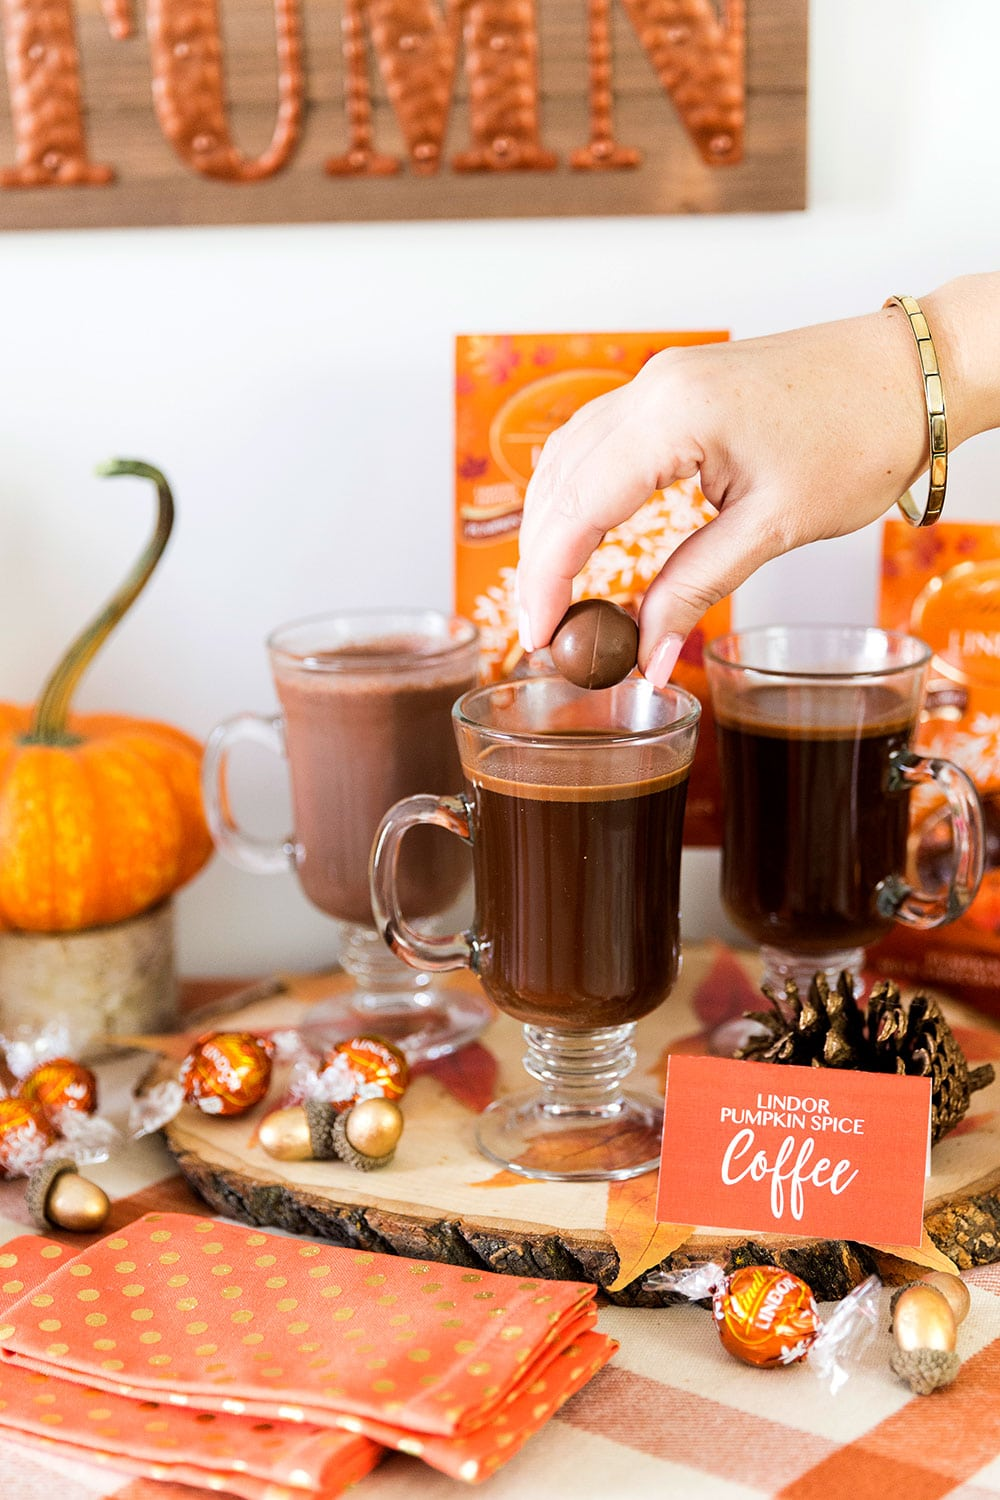 Pumpkin Spice Hot Chocolate & Coffee Bar!